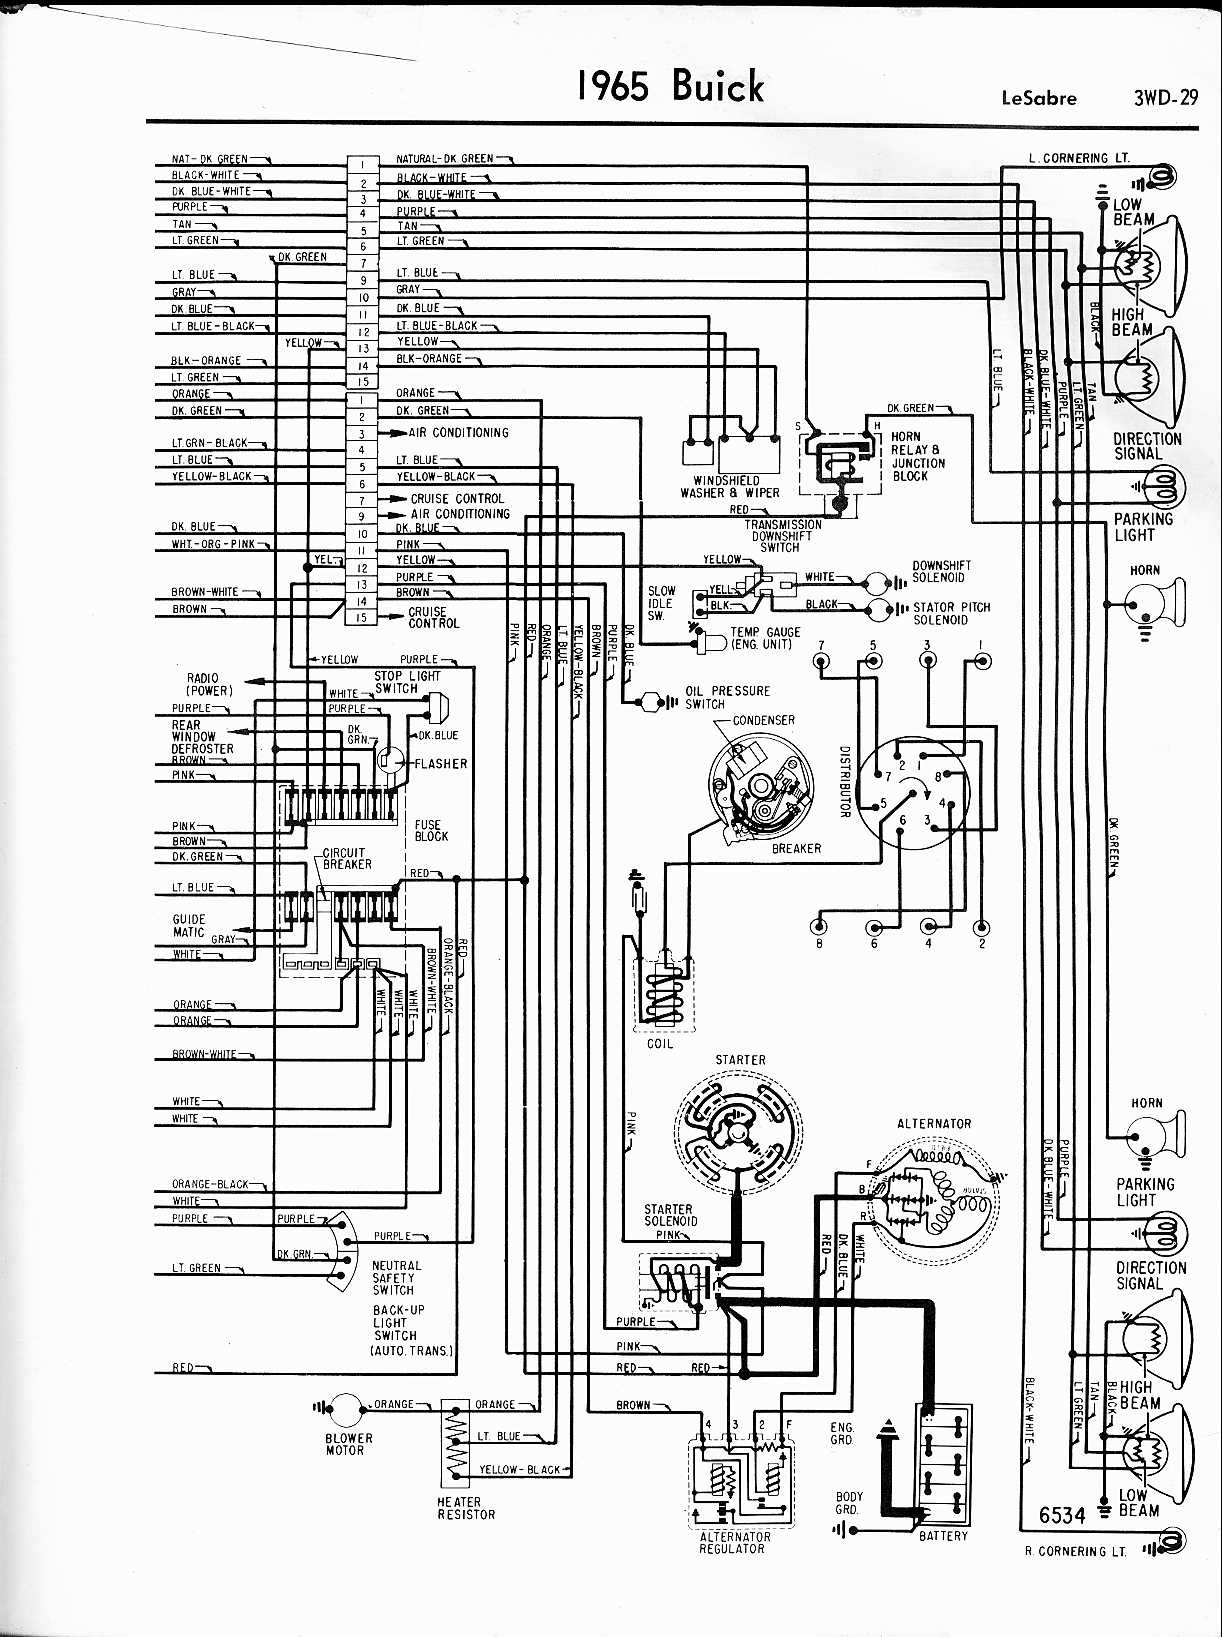 1965 buick wiring diagram